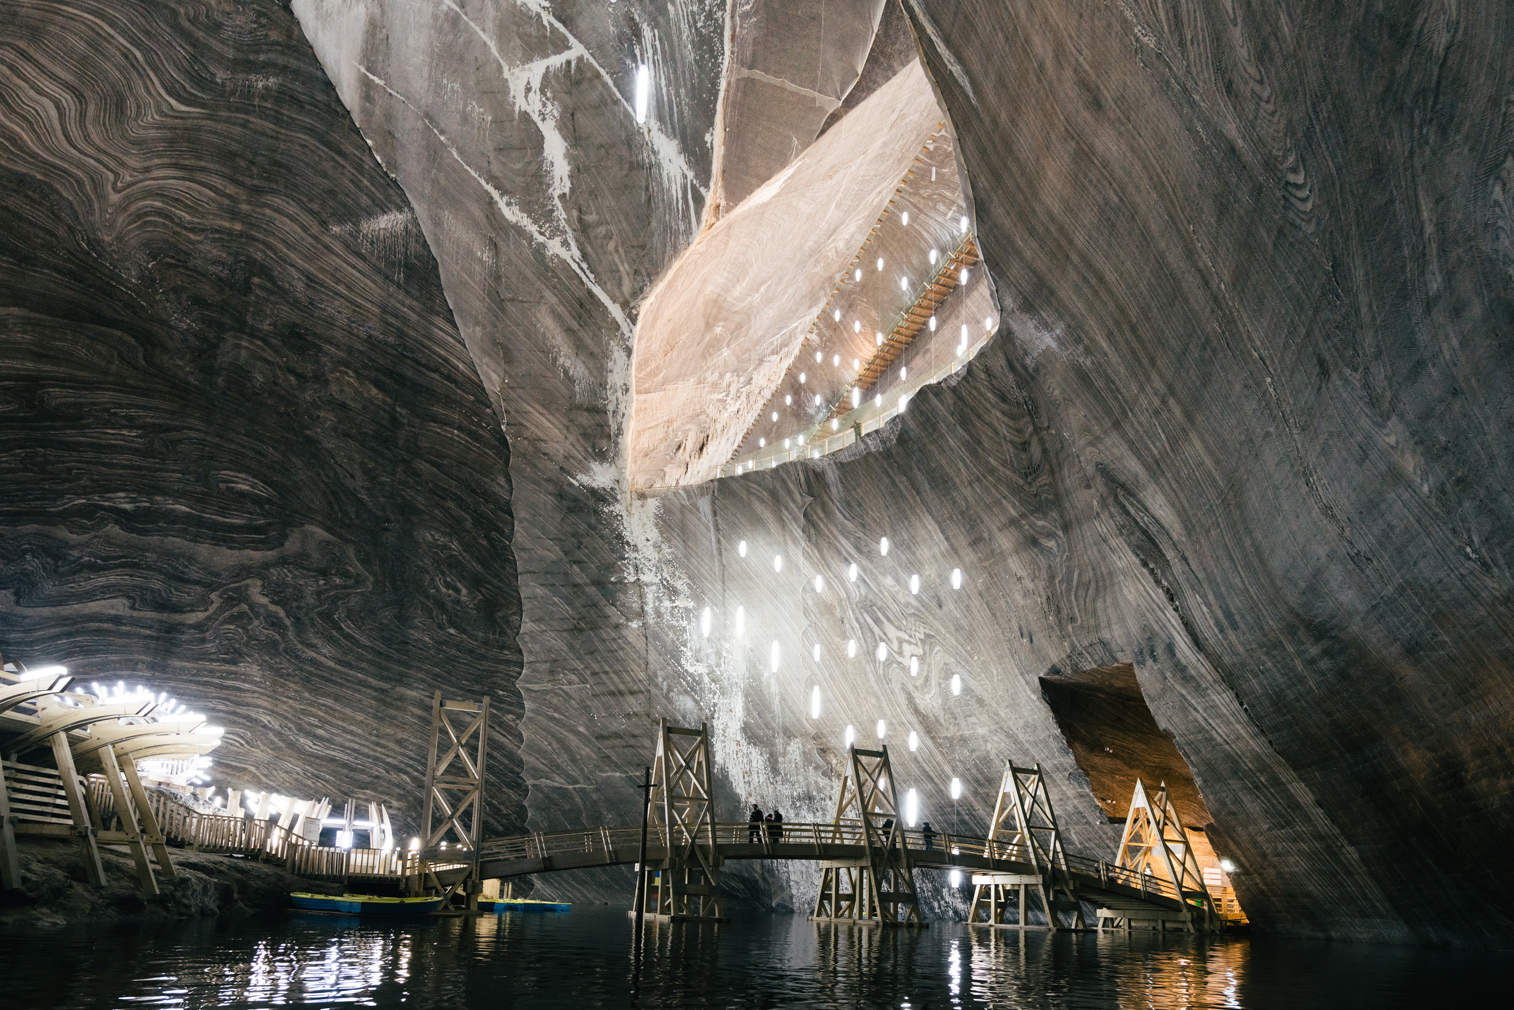 Salina Turda Salt Mine Turda. Photography, Richard John Seymour for The Spaces